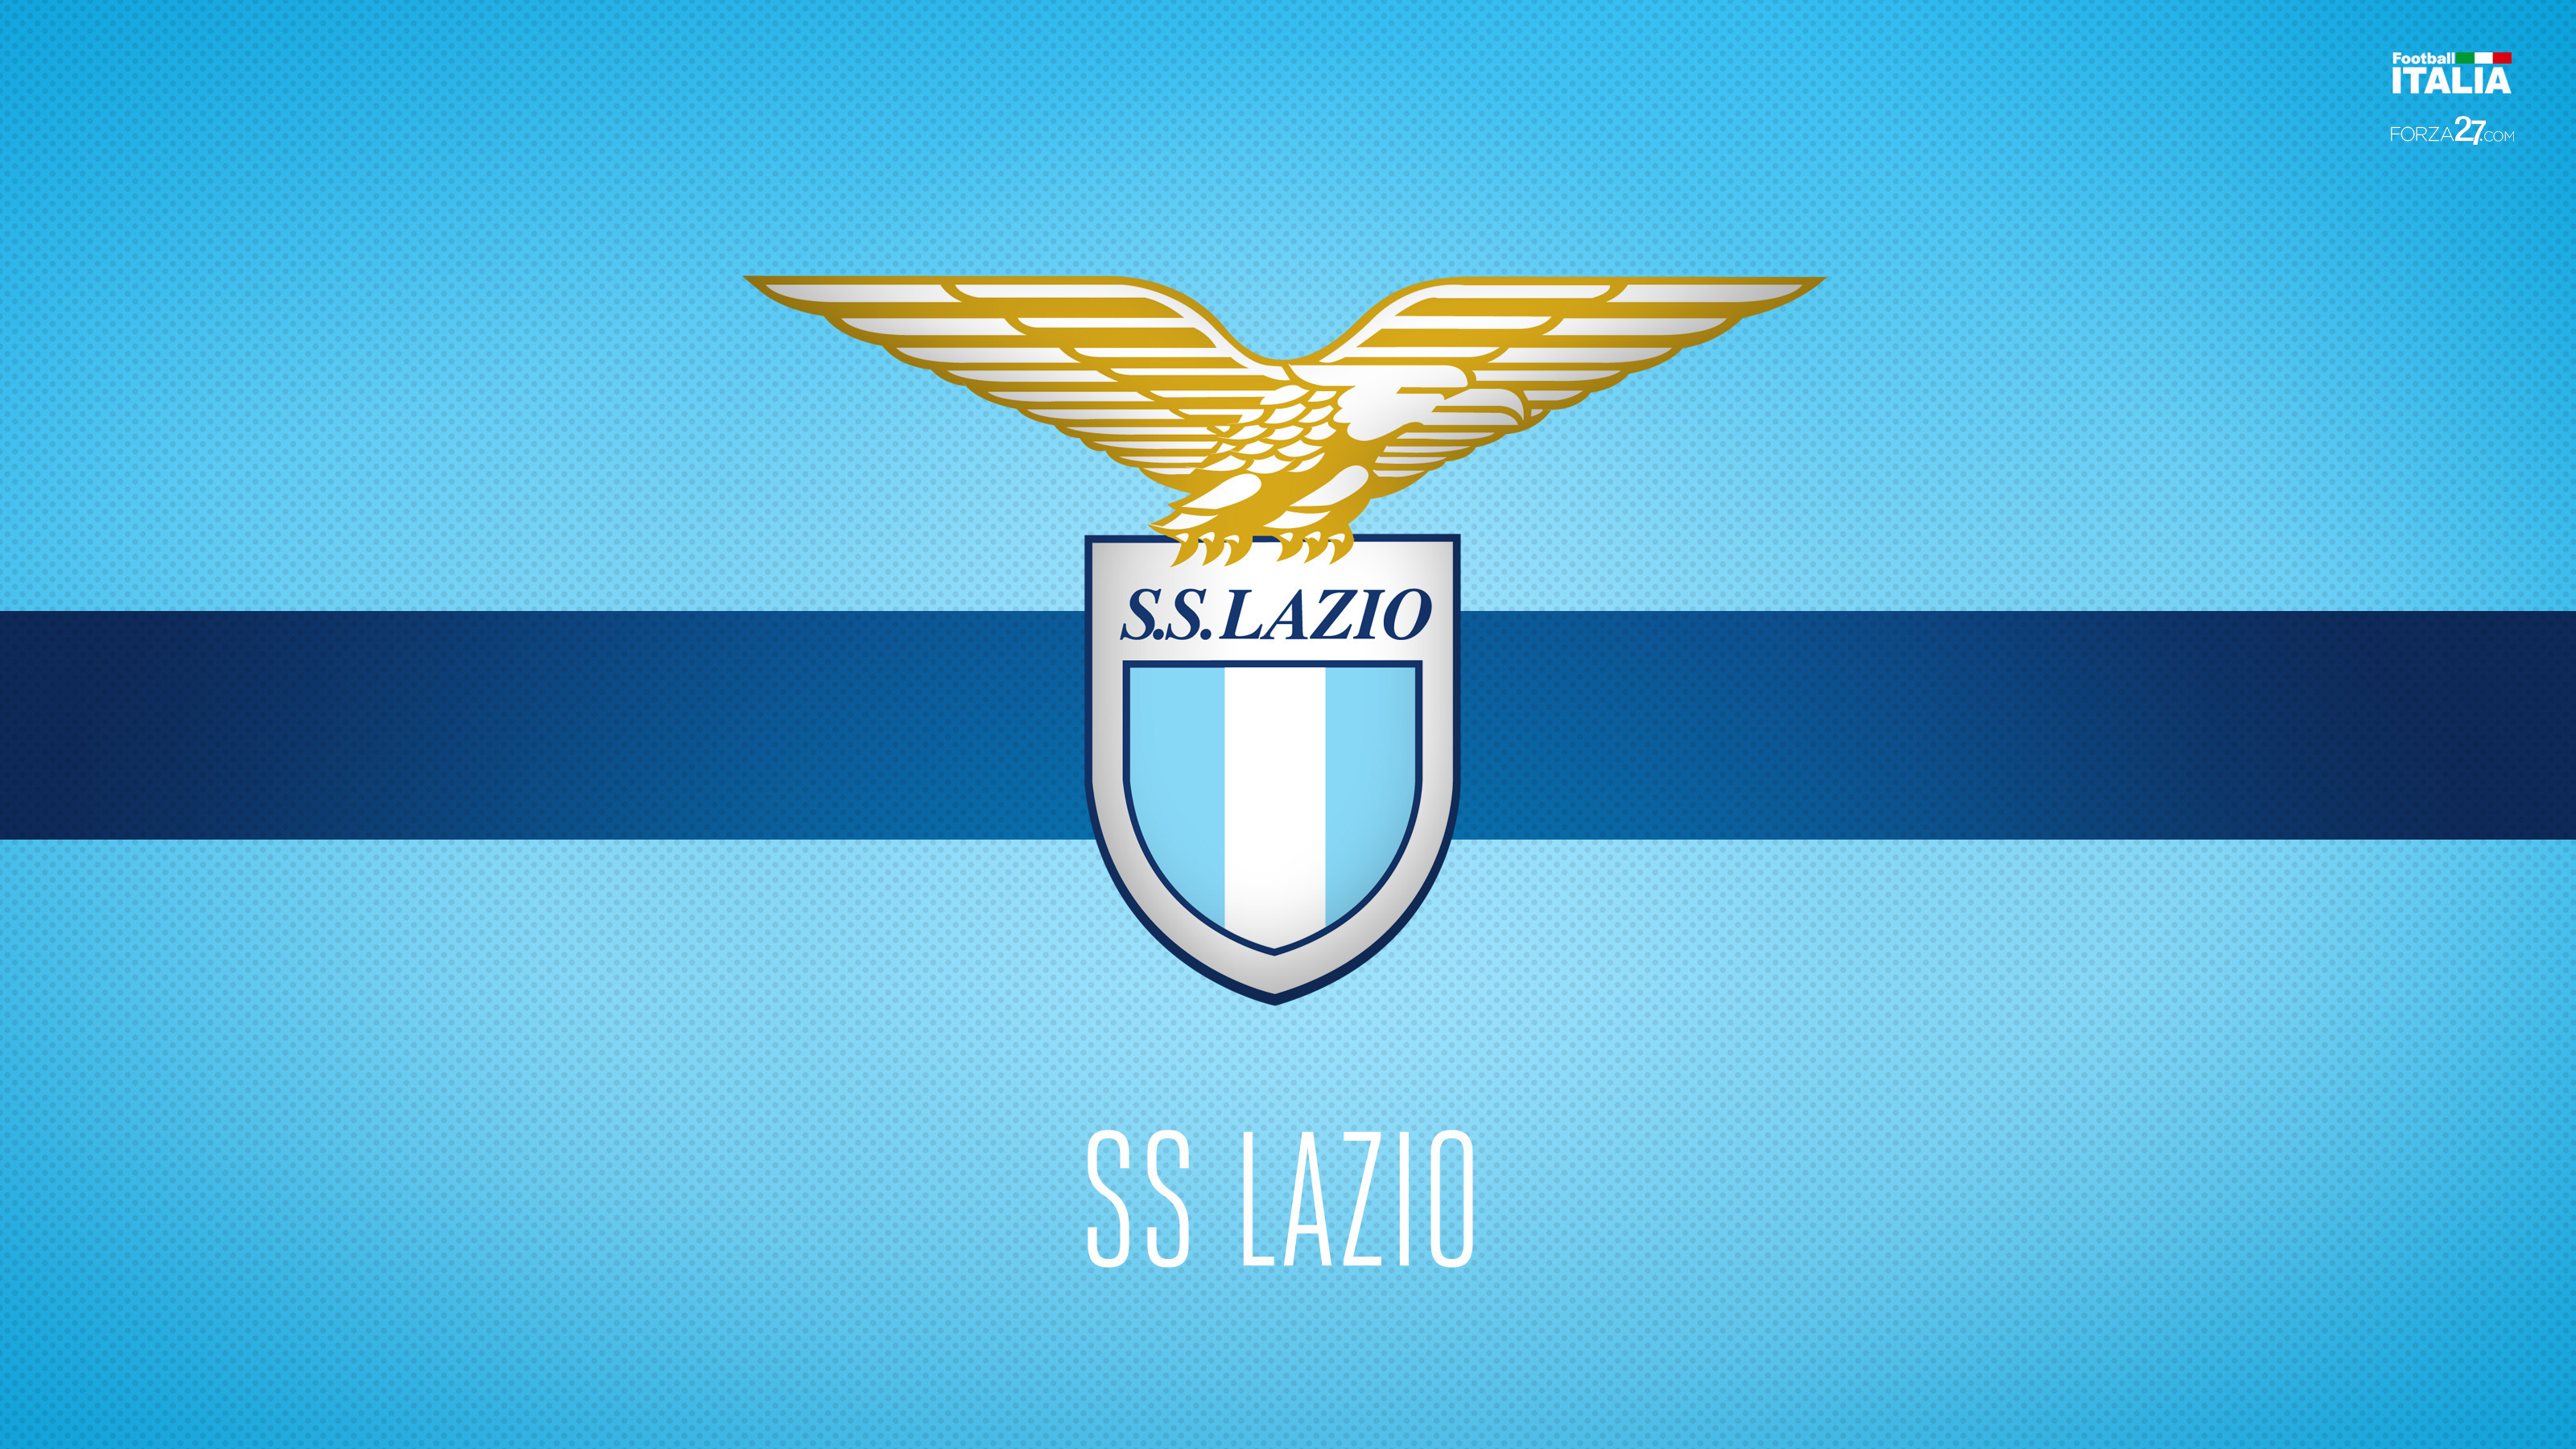 3200x1800 SS Lazio HD Wallpaper 2 - 3200 X 1800